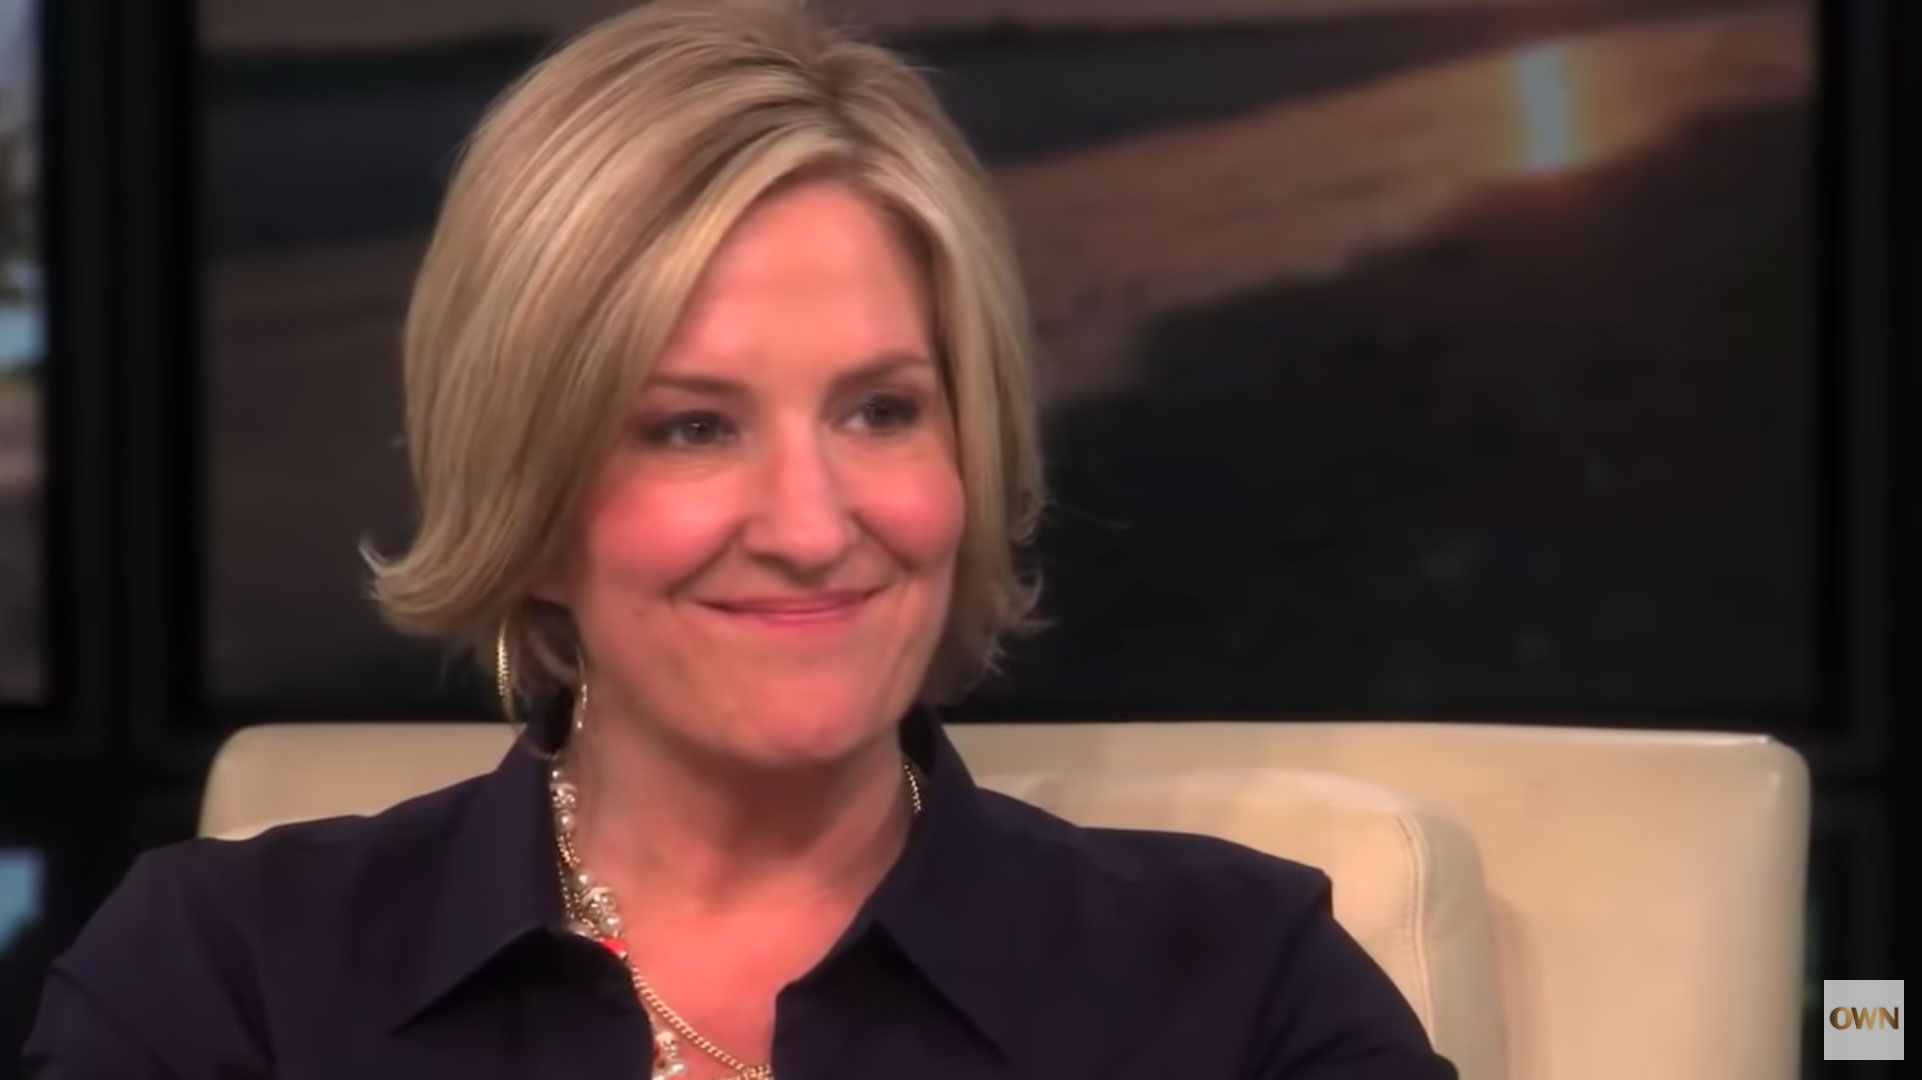 Dr. Brené Brown on Faking It, Perfectionism and Living Wholeheartedly